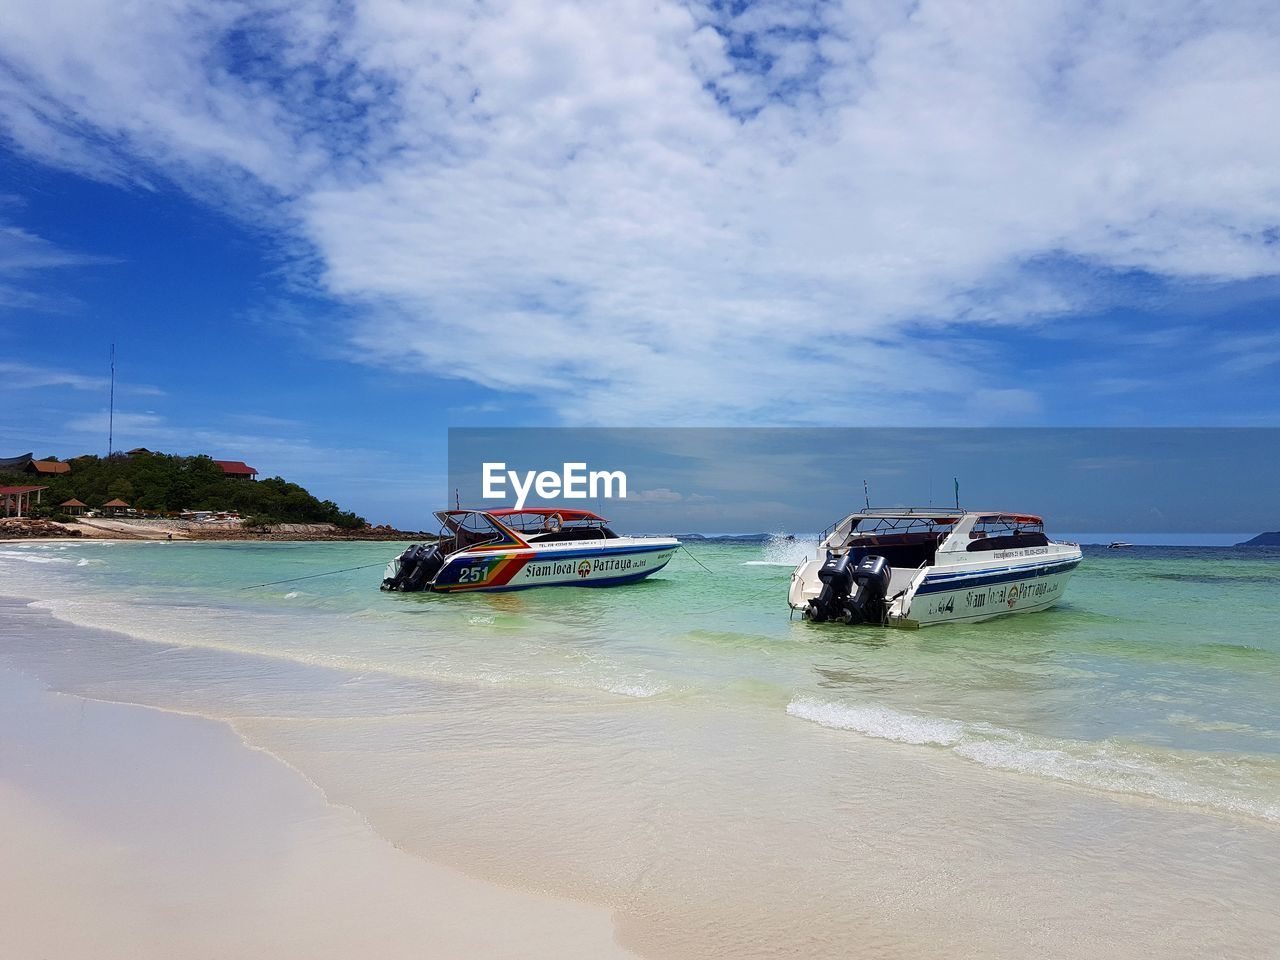 sky, transportation, water, sea, nature, beauty in nature, nautical vessel, beach, scenics, tranquil scene, mode of transport, tranquility, day, cloud - sky, outdoors, sand, no people, horizon over water, jet boat